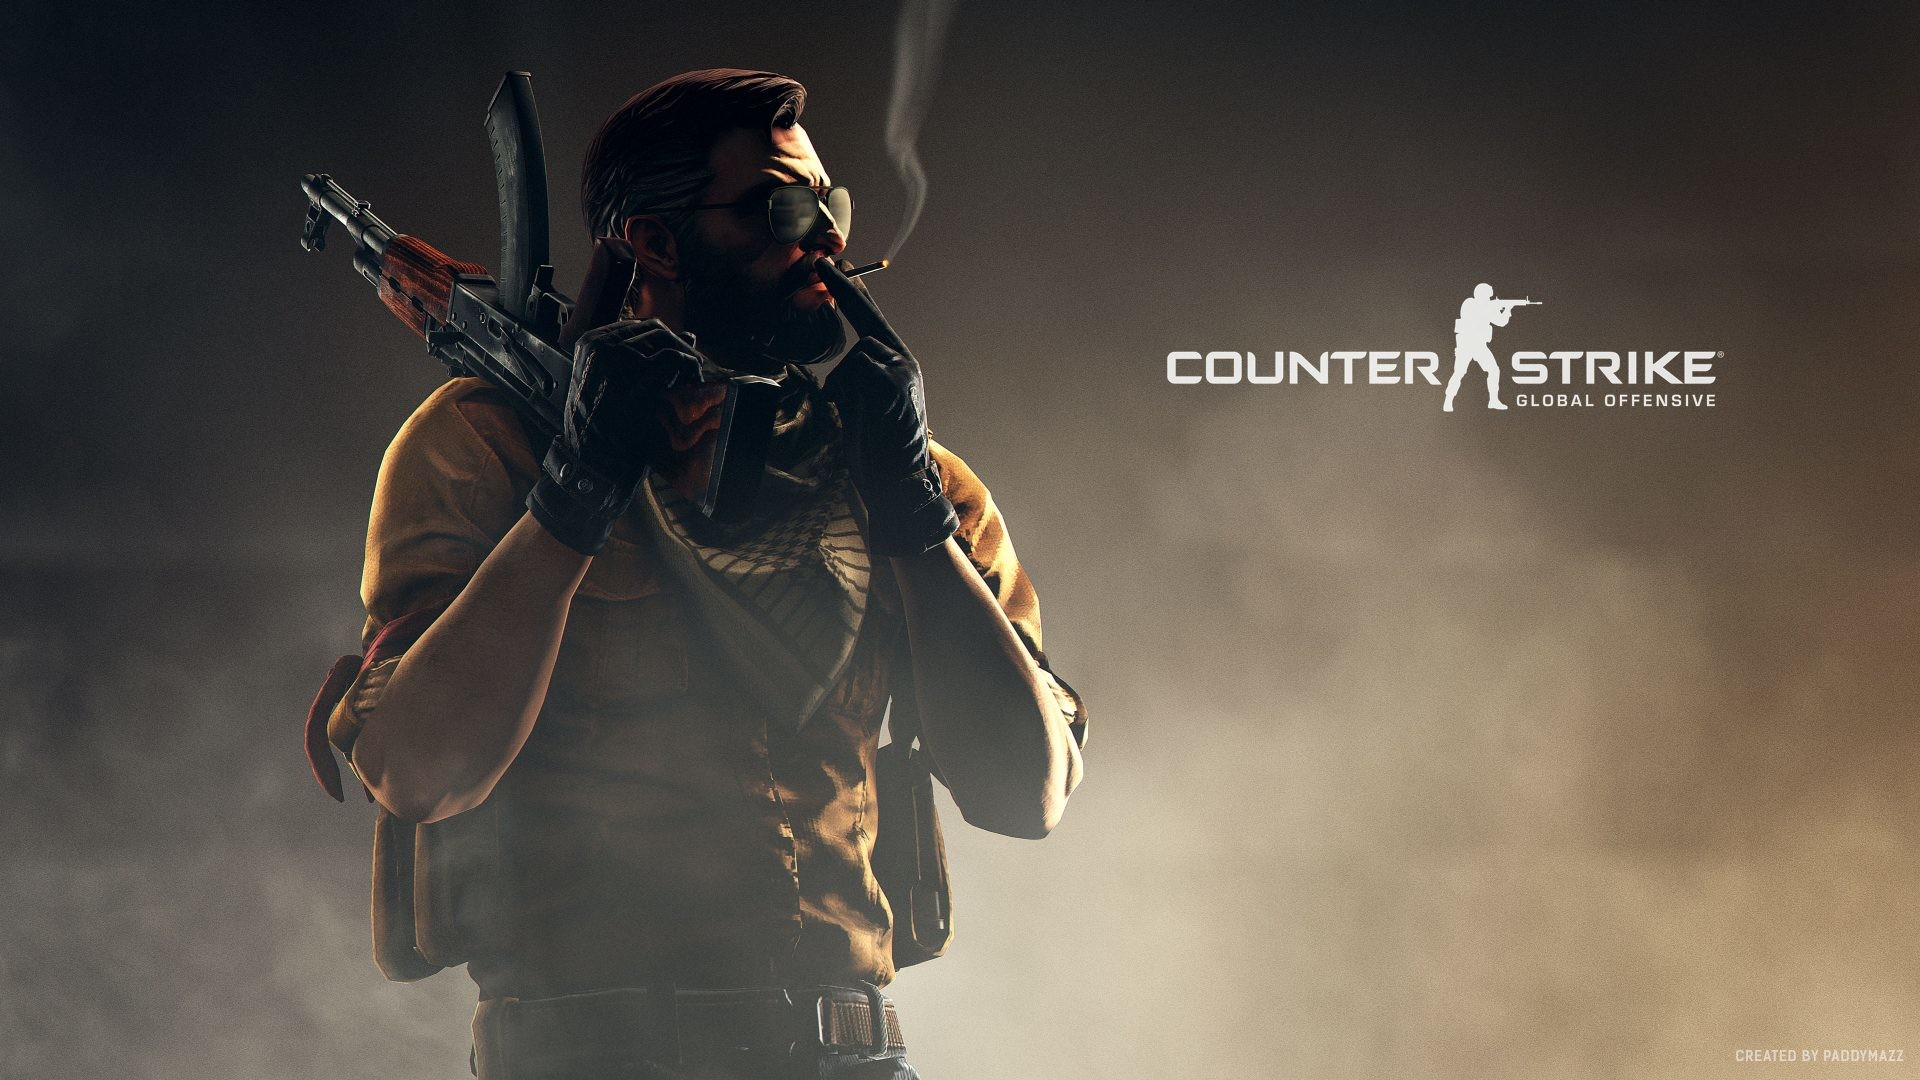 Counter Strike Hd Wallpapers 78 Images